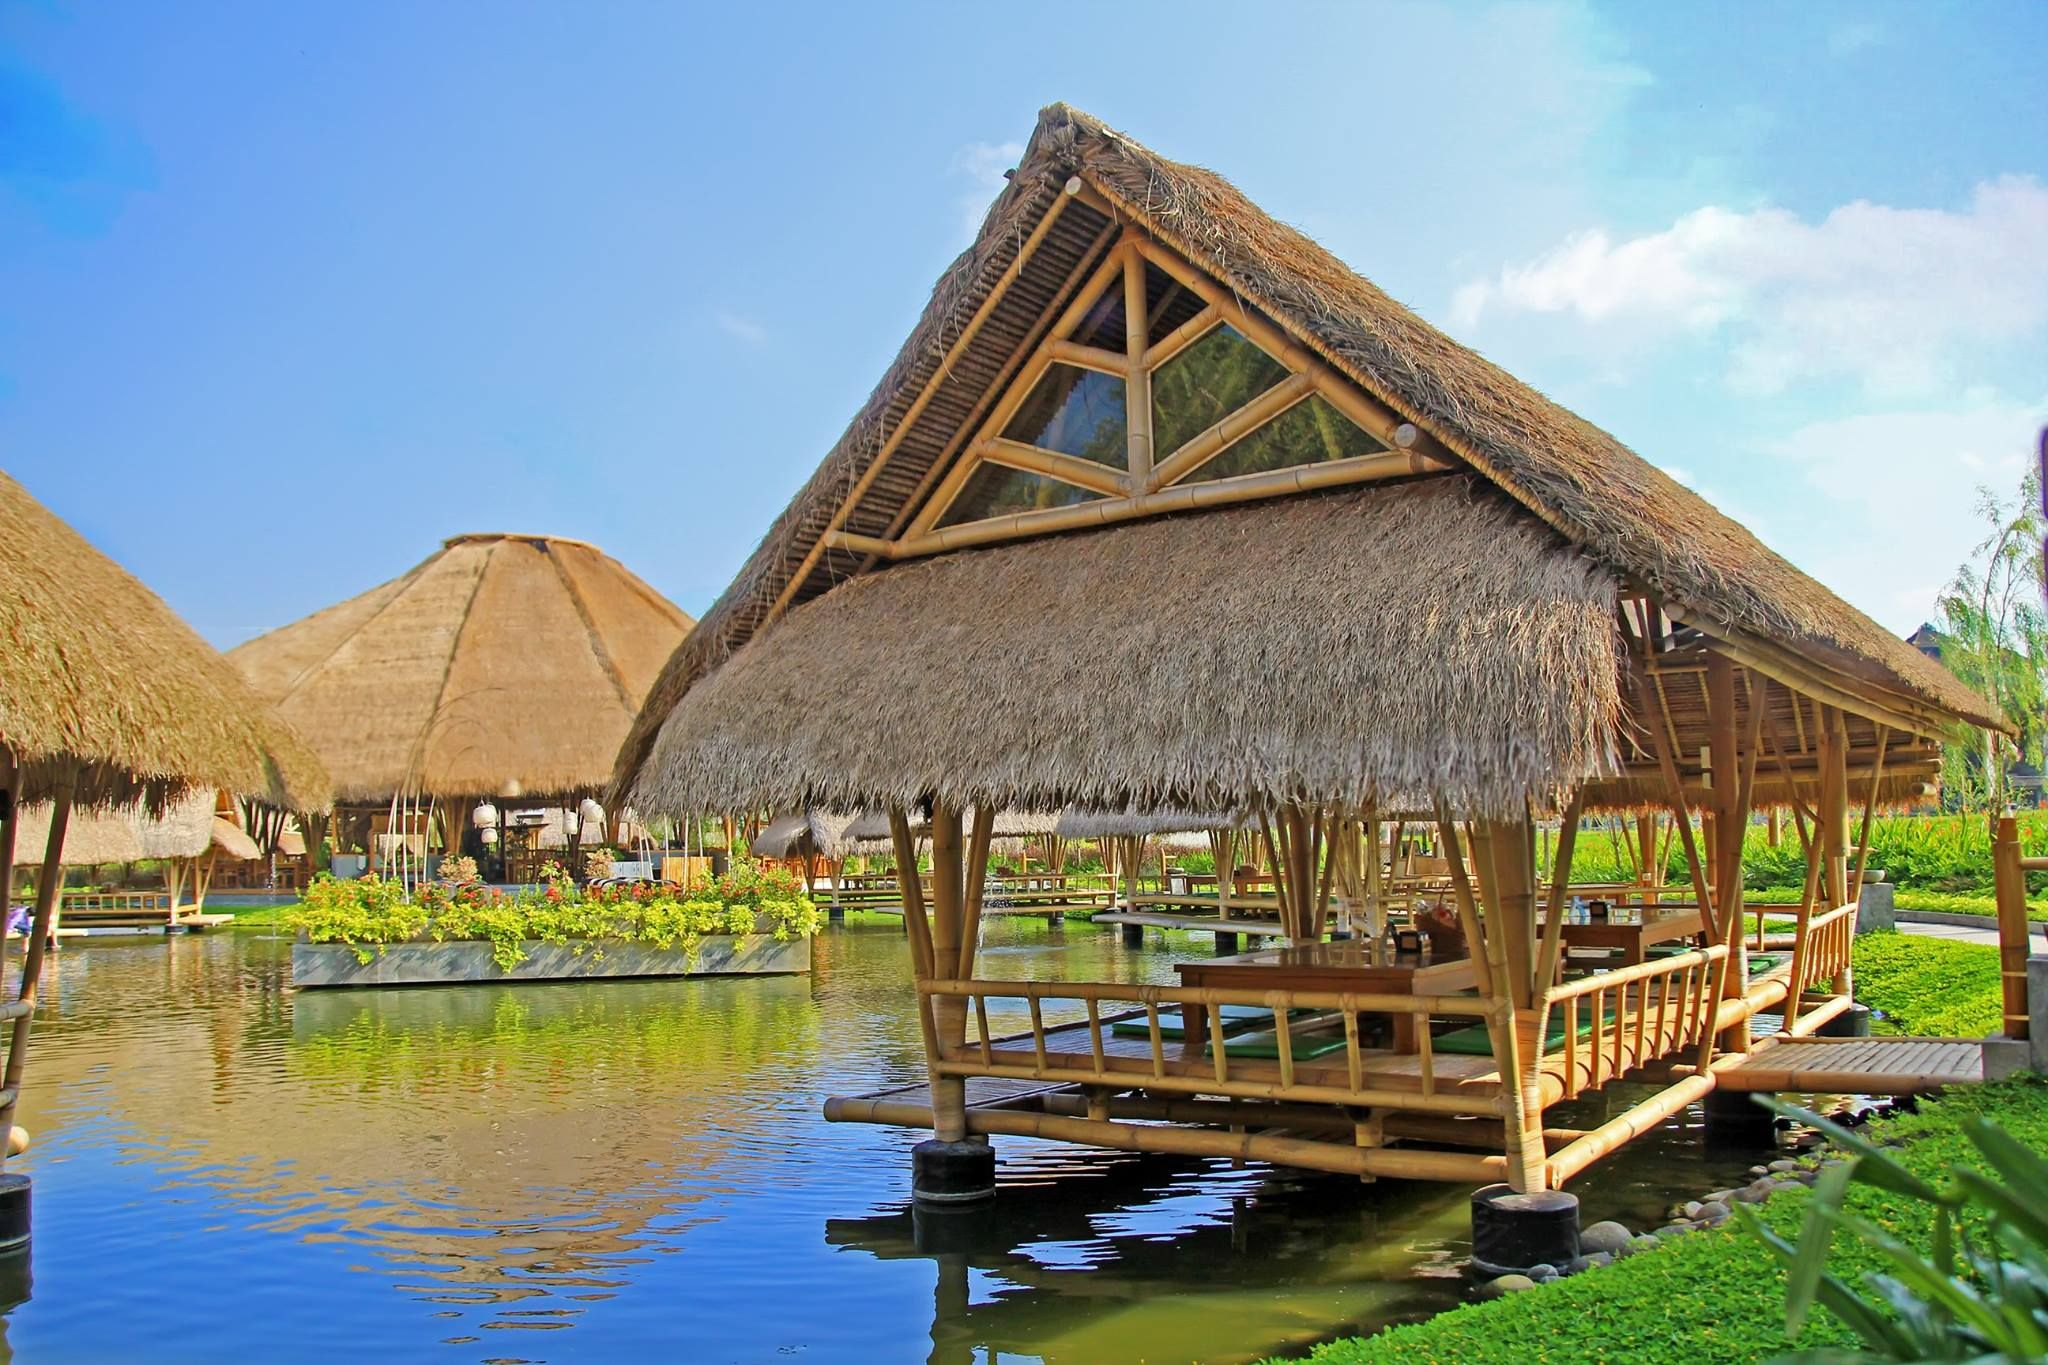 Bale-Udang-Facebook-by-Bale-Udang(2) | Bamboo | Bamboo building